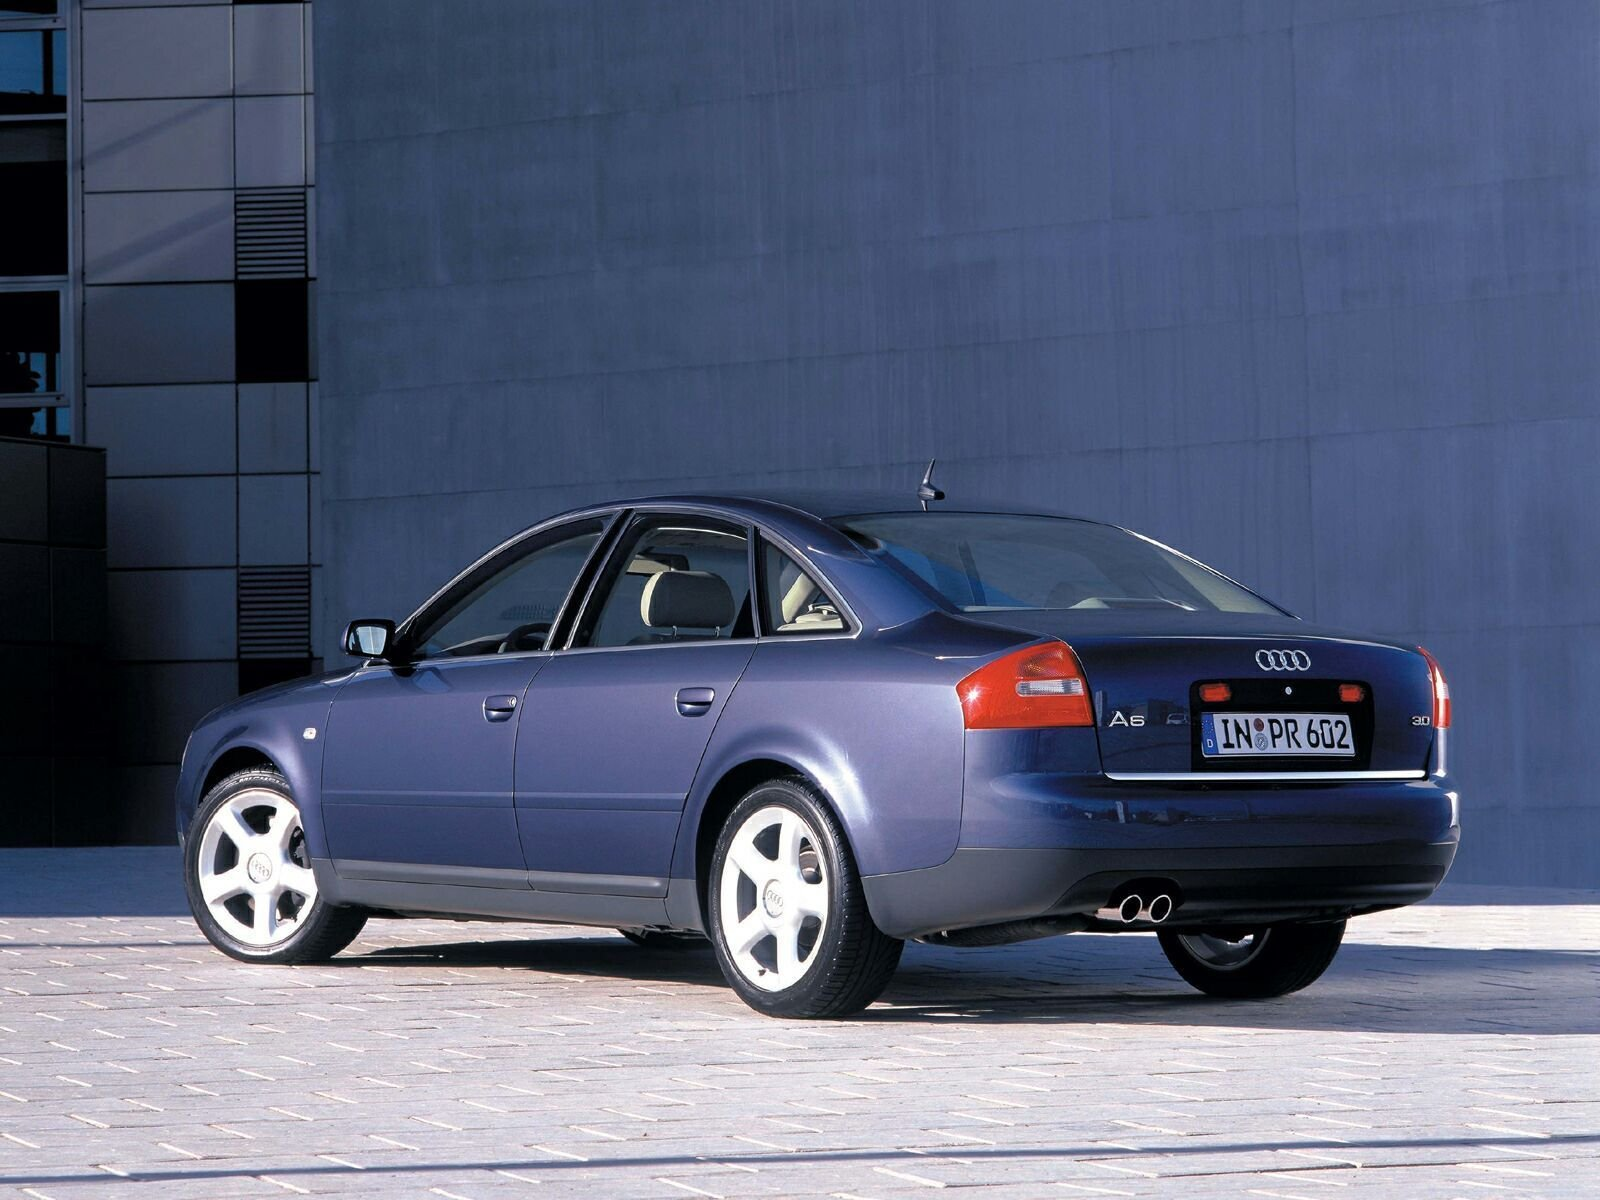 2001 audi a6 picture 29814 car review top speed. Black Bedroom Furniture Sets. Home Design Ideas